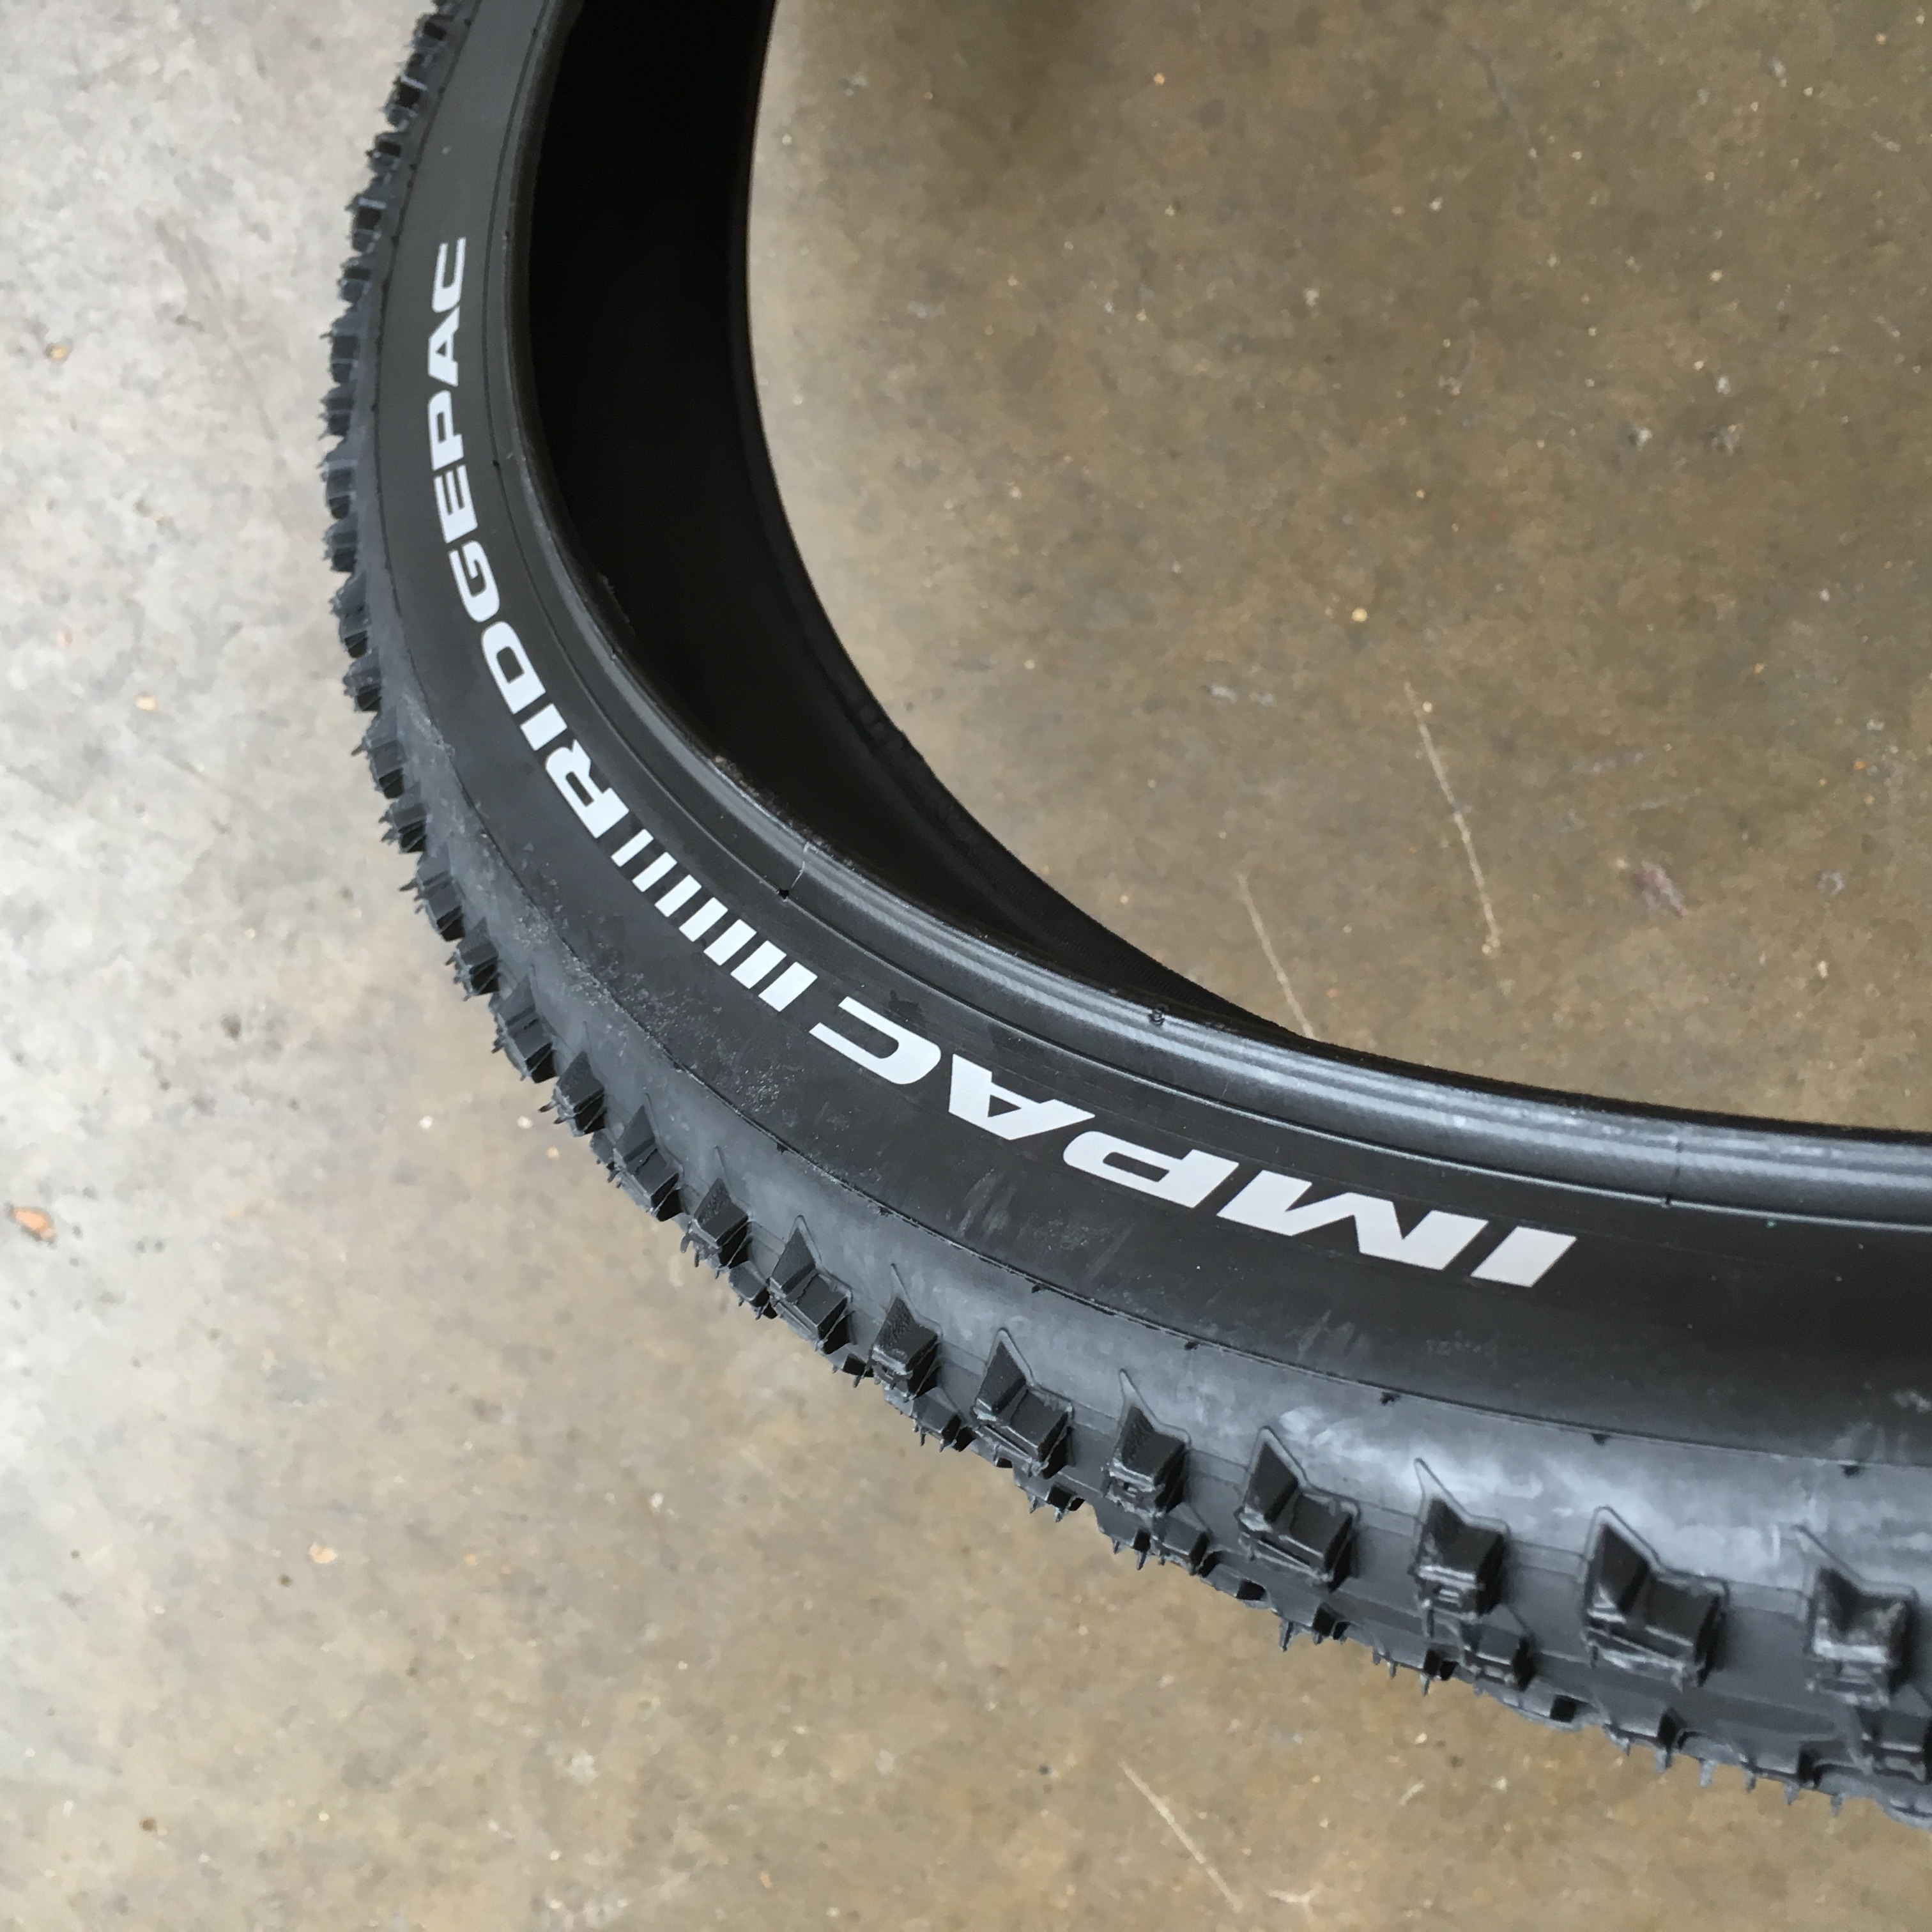 Bike-Tyre-26-X-2-1-Impac-Ridgepac-Knobbly-Mountain-Bike-Cycle-Tire thumbnail 4